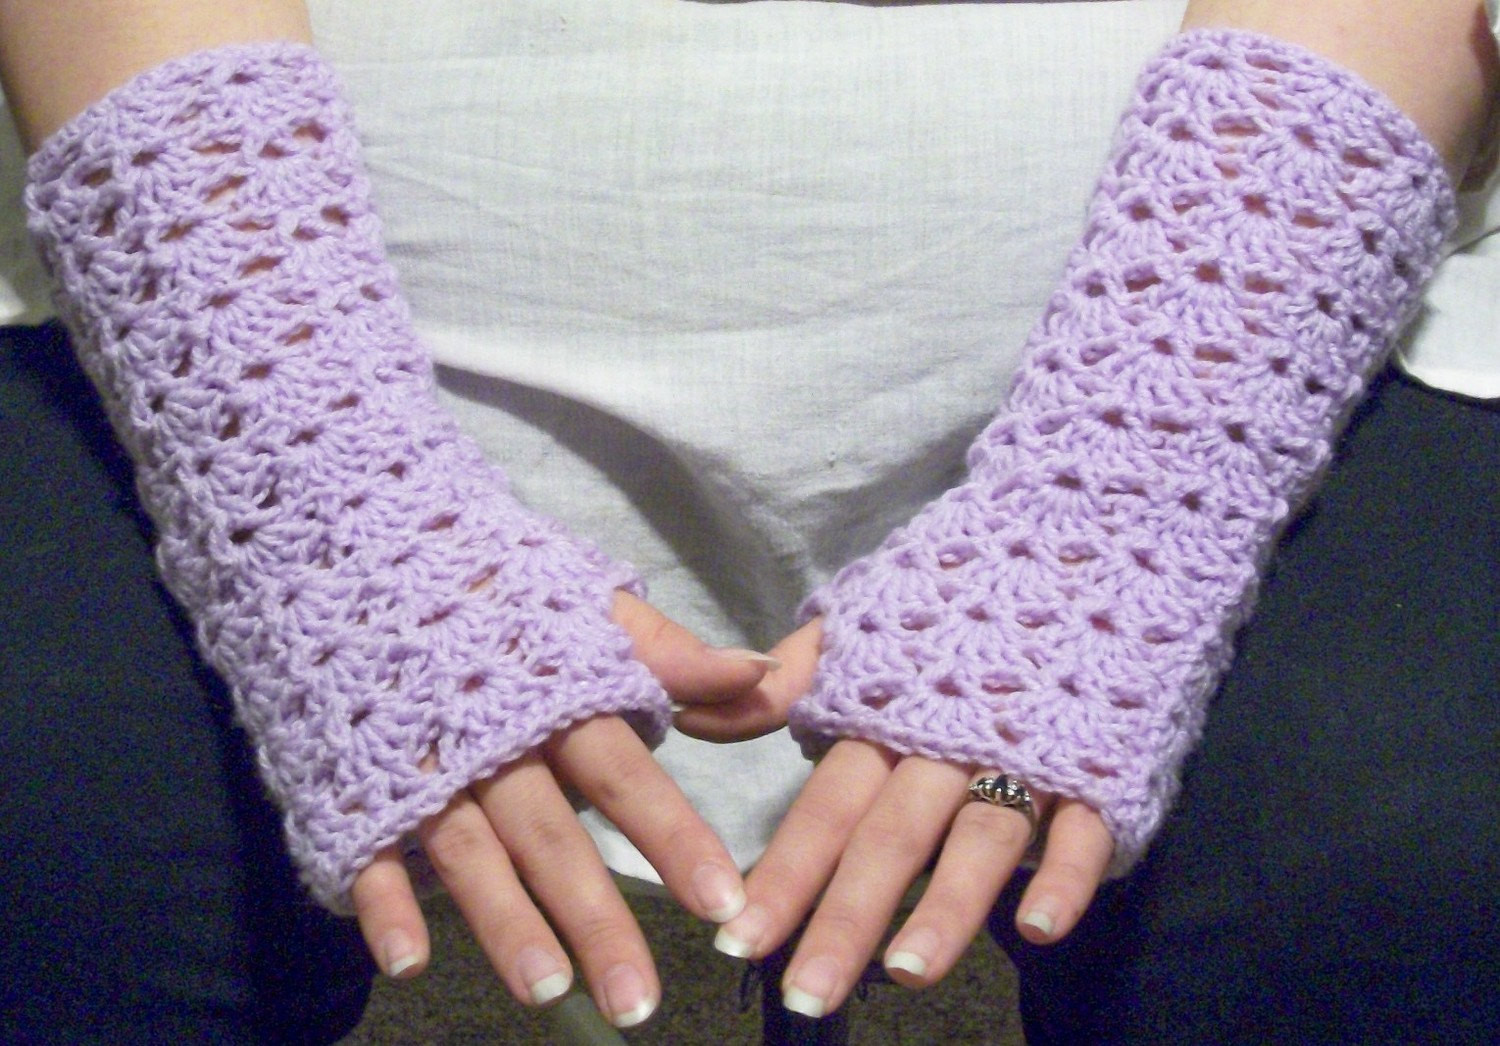 New Tencrowns Crafts & Letterboxing Hey Do You Crochet Crochet Pattern for Fingerless Gloves Of Delightful 46 Models Crochet Pattern for Fingerless Gloves